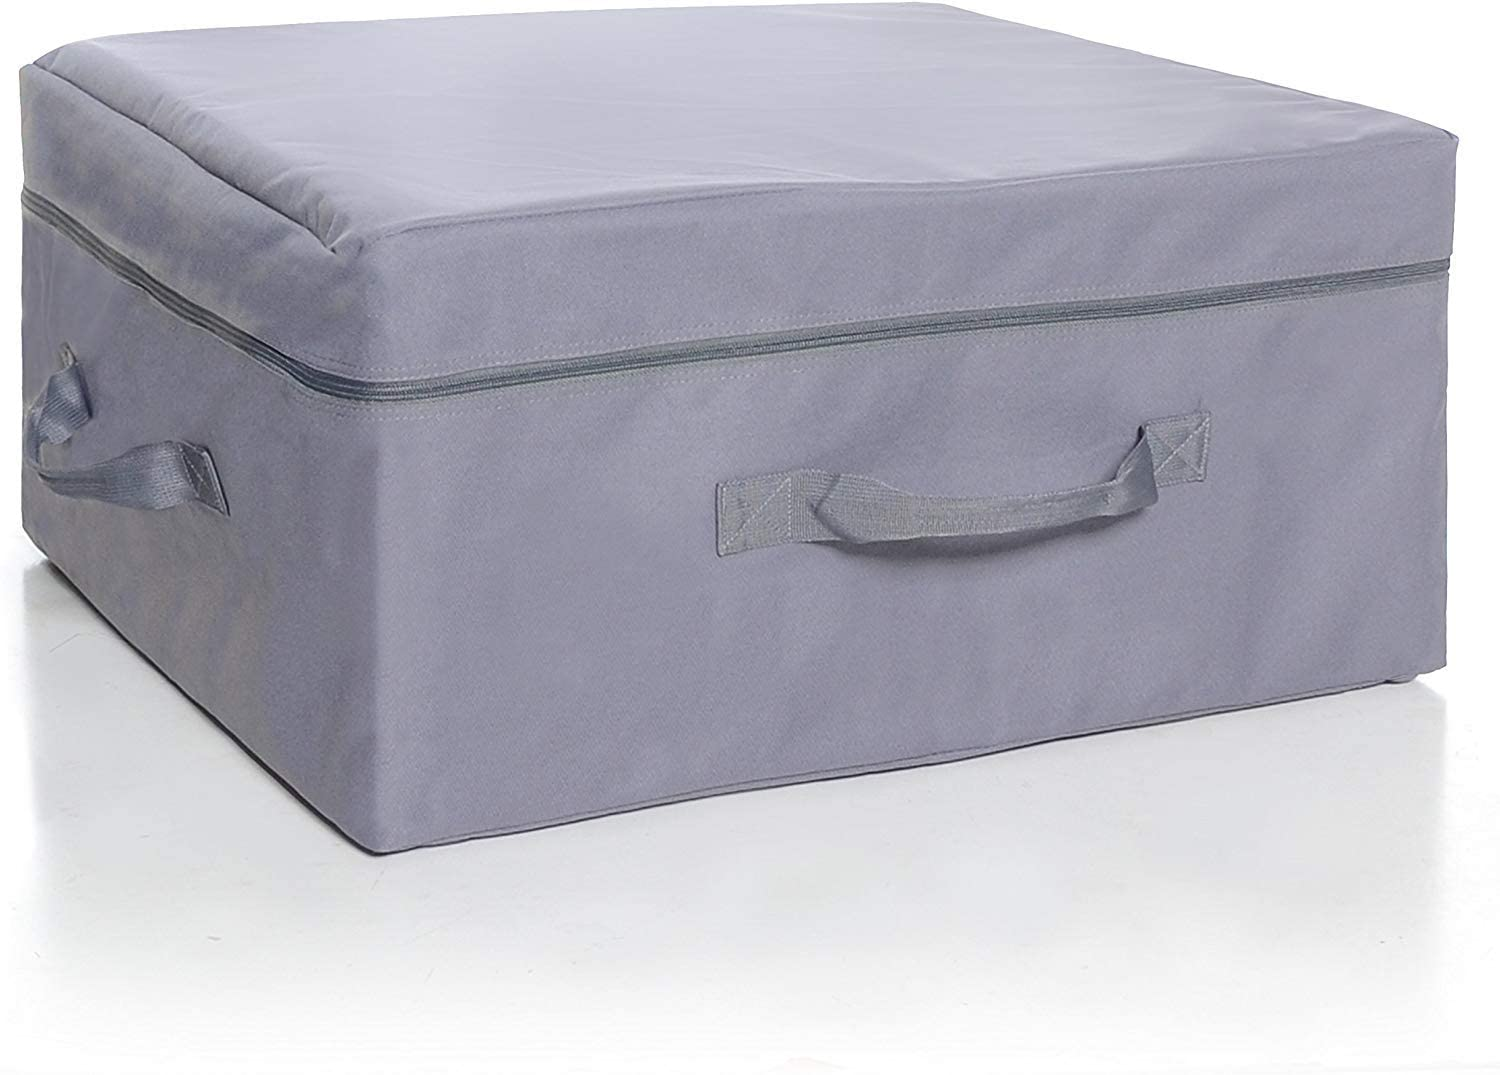 Carry Case for Milliard Tri-Fold Mattress 4 inch Queen ...